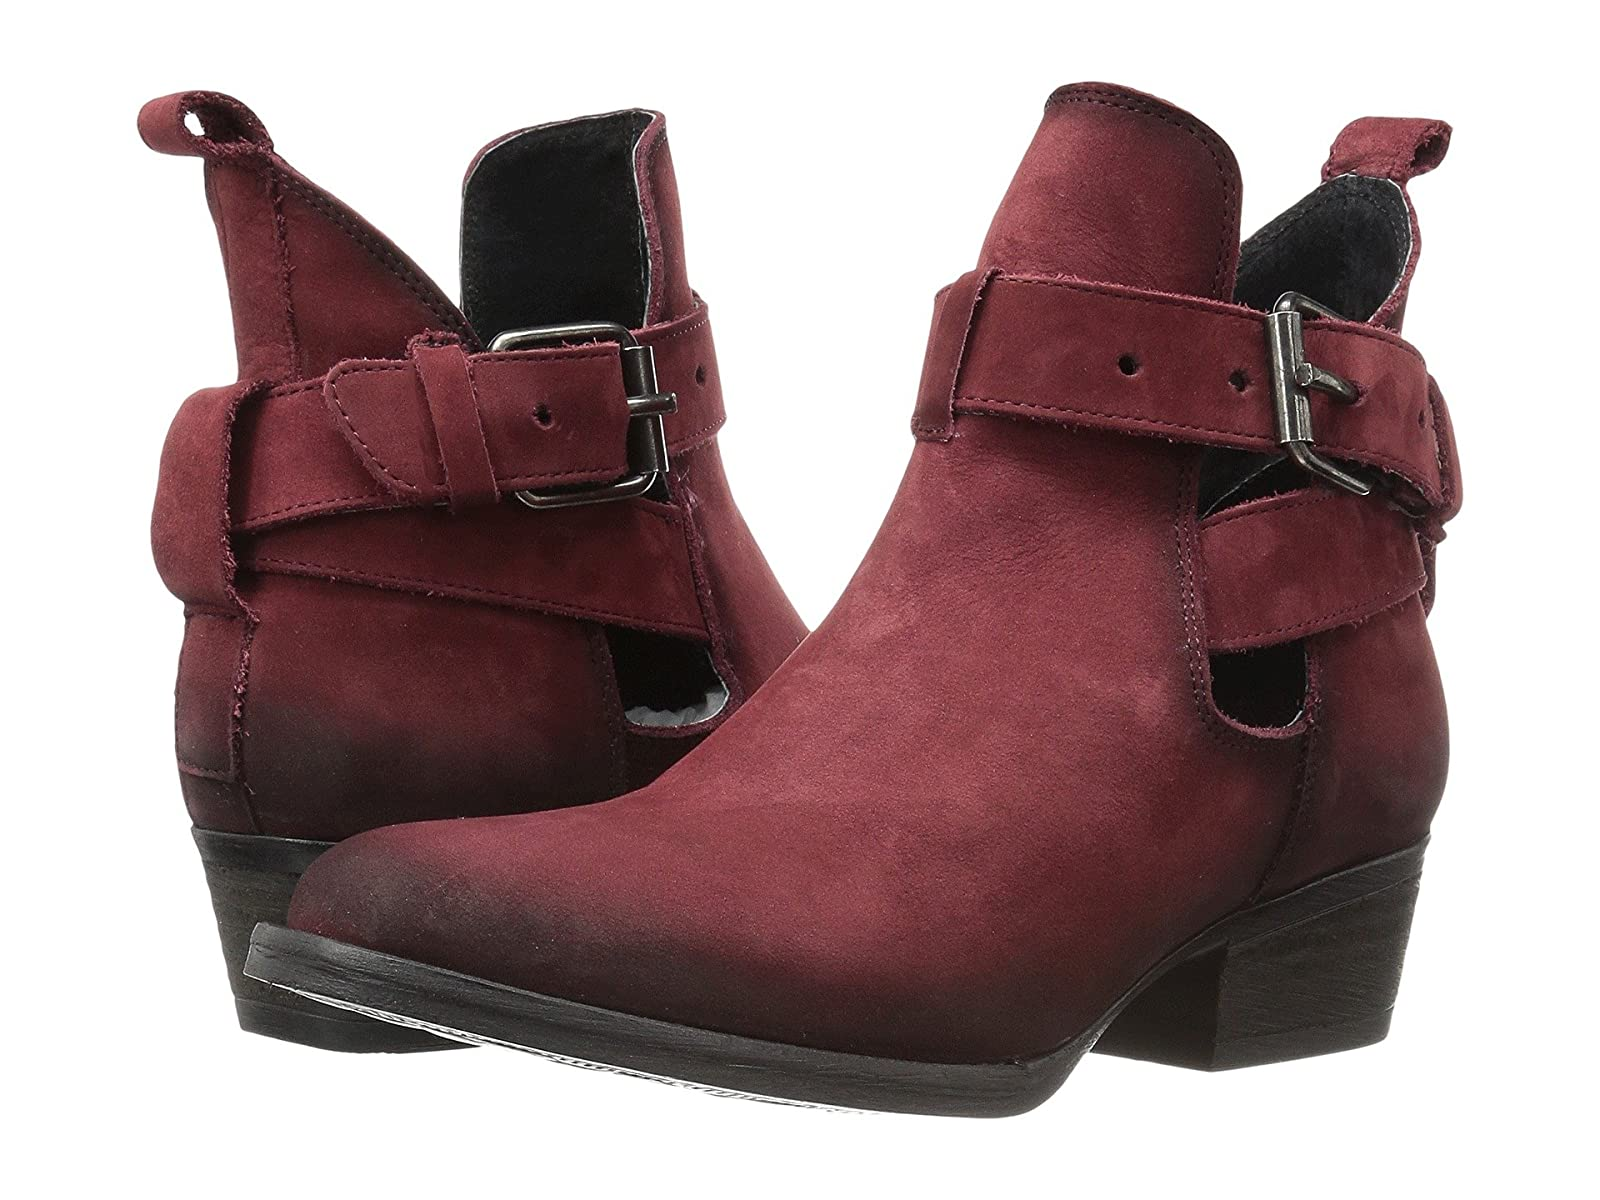 VOLATILE FieryCheap and distinctive eye-catching shoes